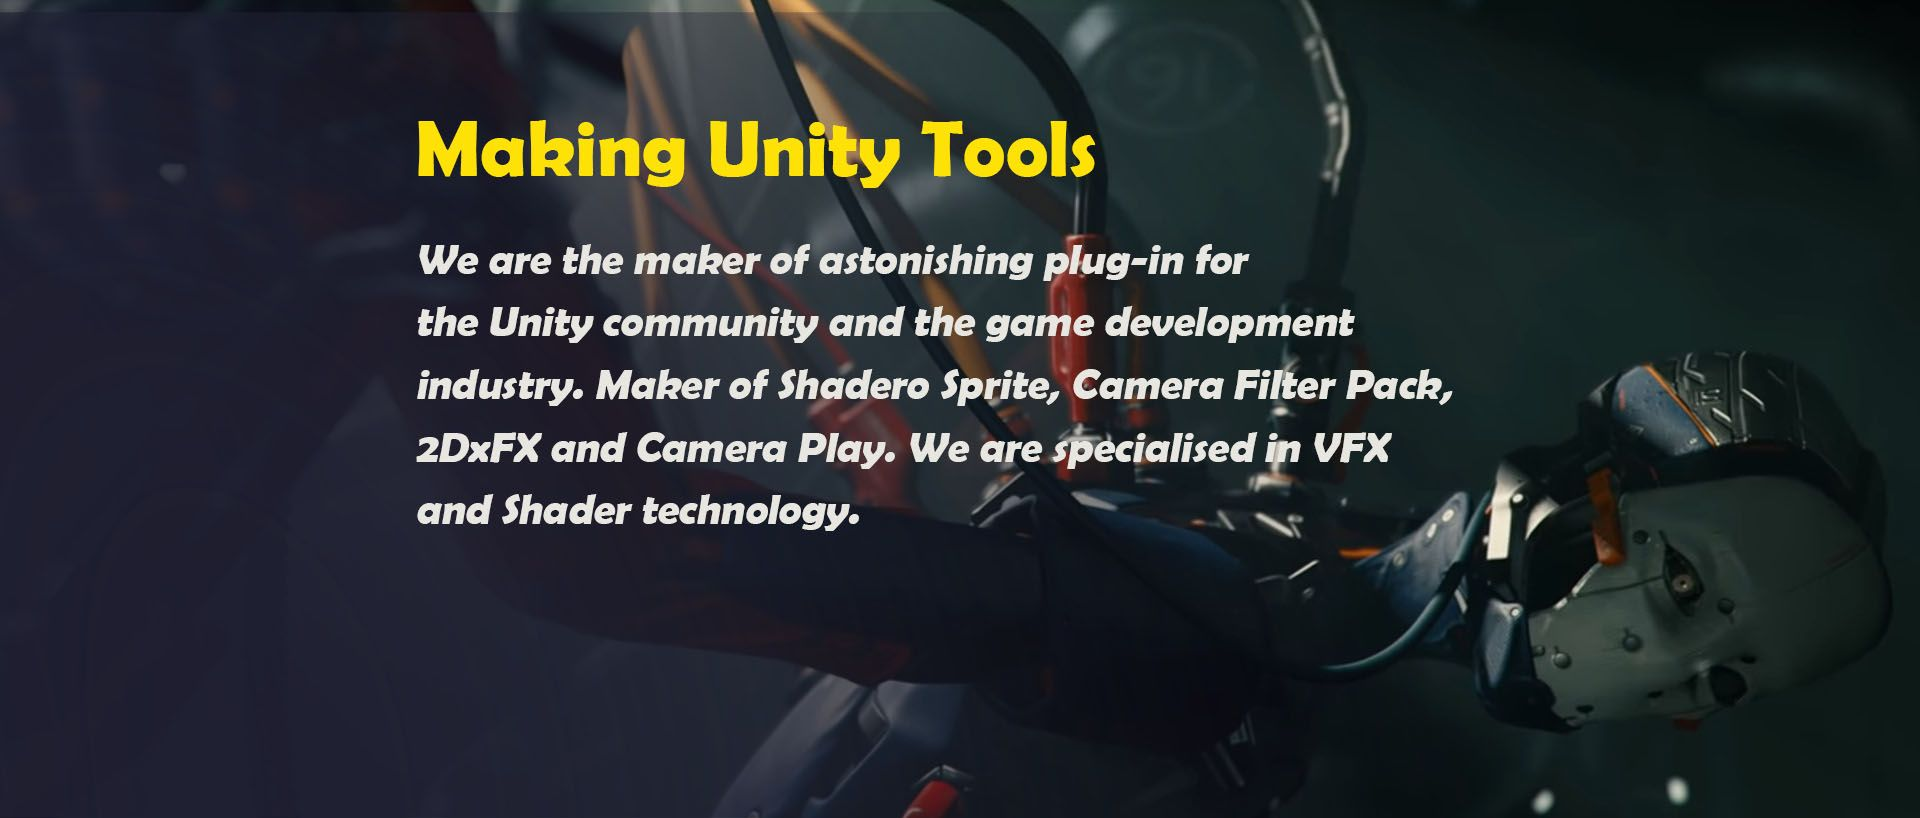 Making Unity Tools